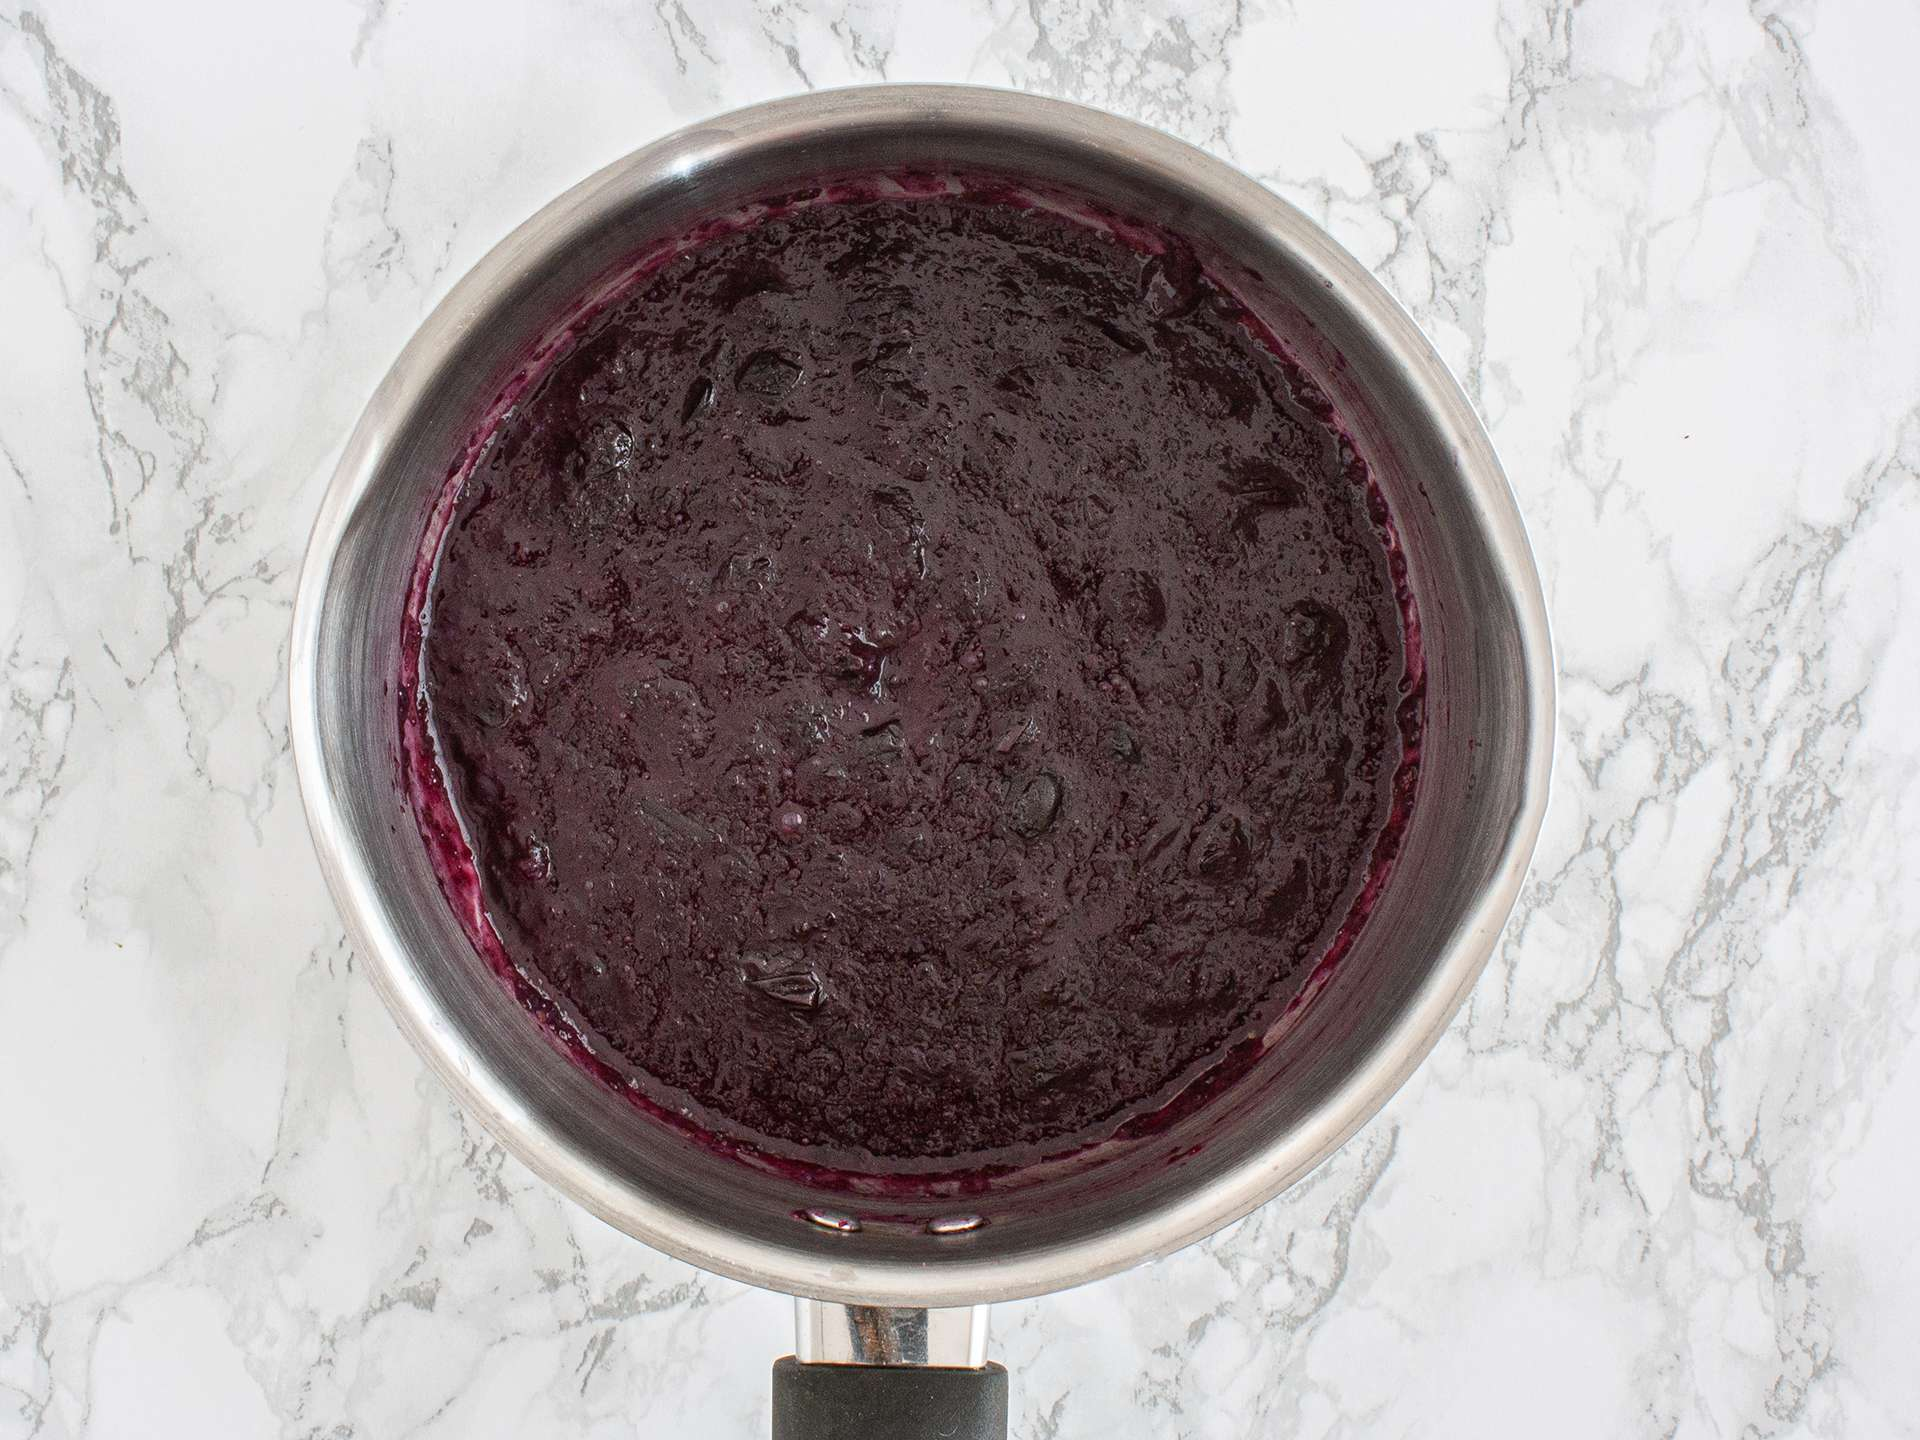 Step 3.1 of Sugar Free Blueberry Jam Recipe with Flaxseeds